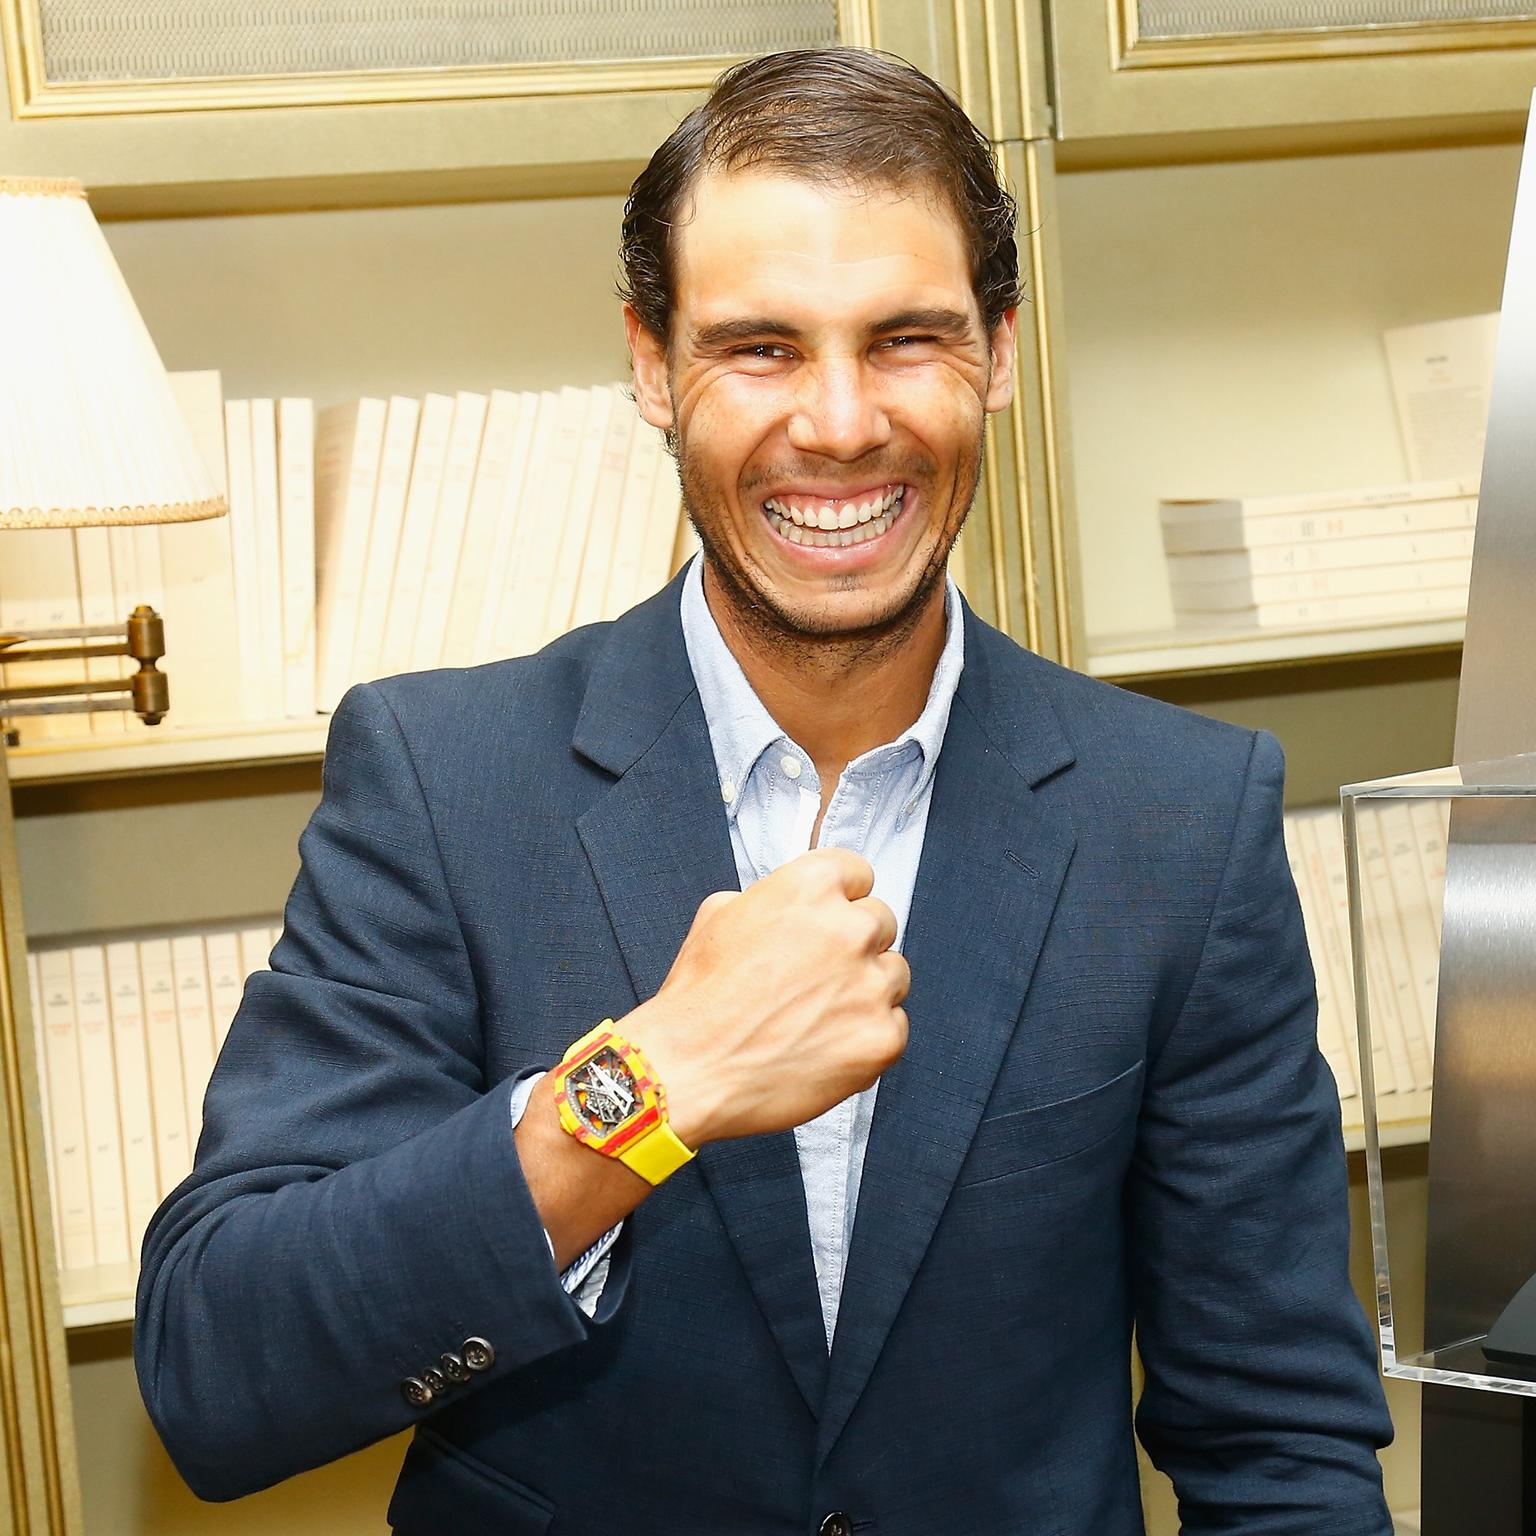 Rafael Nadal in the Richard Mille RM 27-03 Tourbillon watch